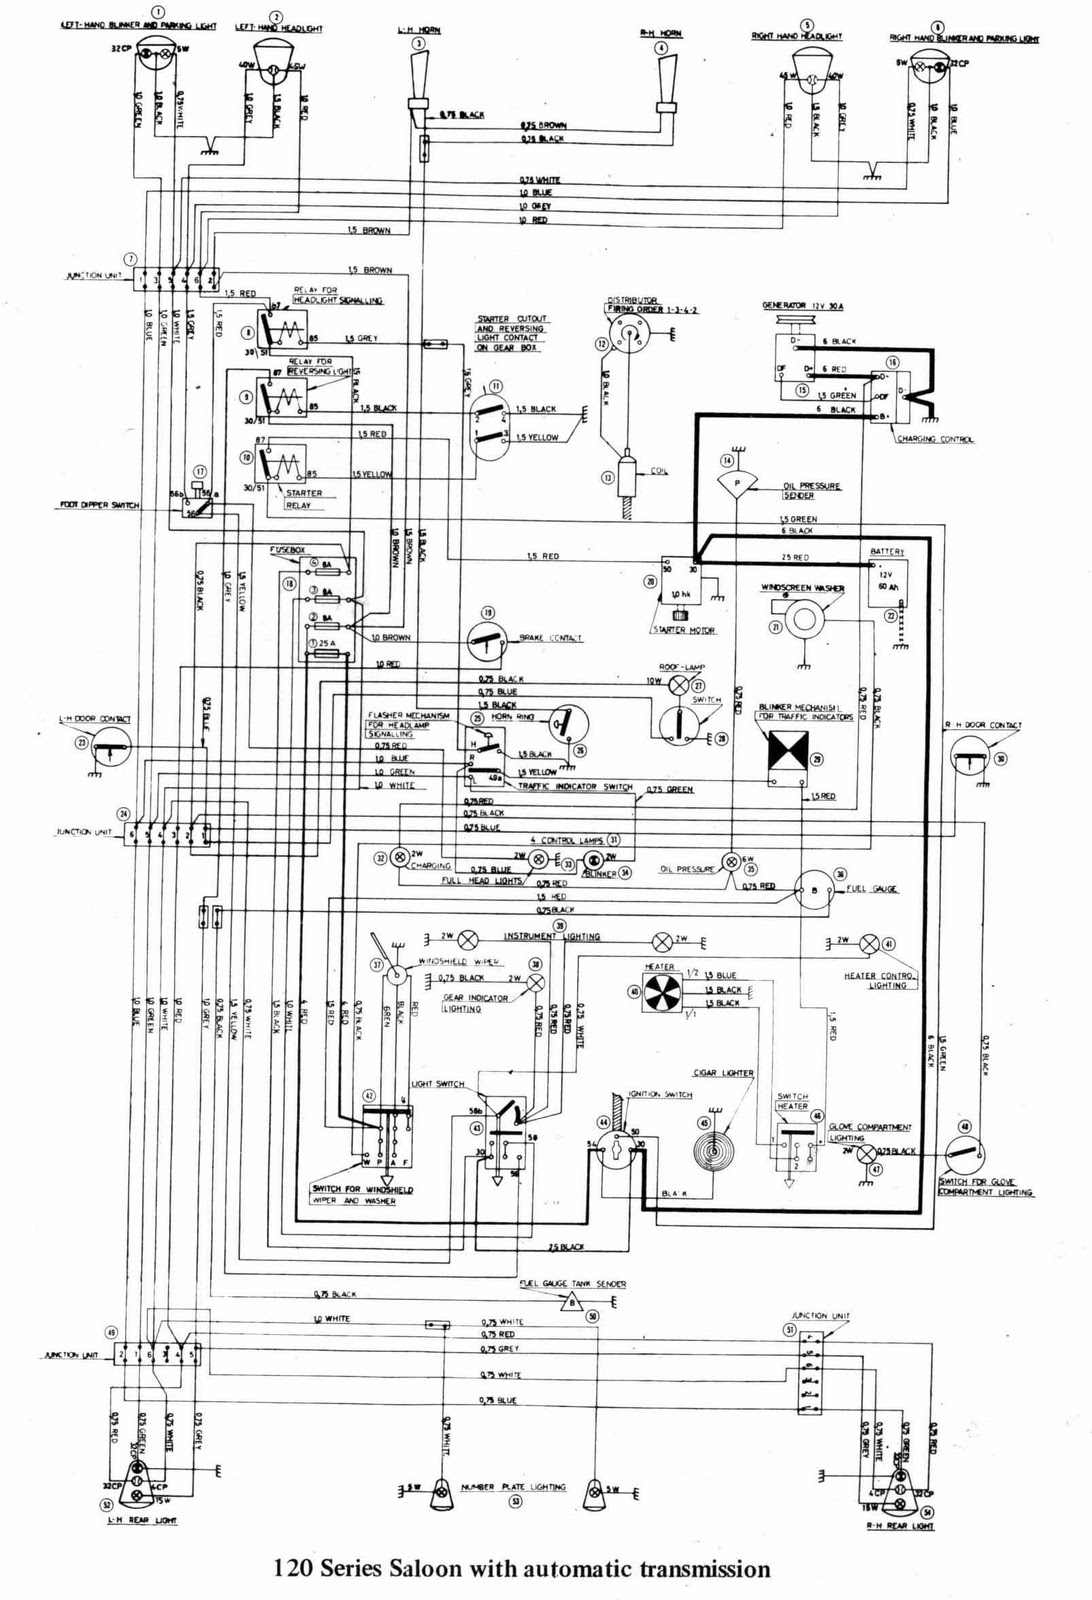 Volvo D12 Wiring Diagram - 2002 Ml320 Fuel Filter -  dodyjm.nescafe.jeanjaures37.fr | Volvo D12 Ecm Wiring Diagram |  | Wiring Diagram Resource